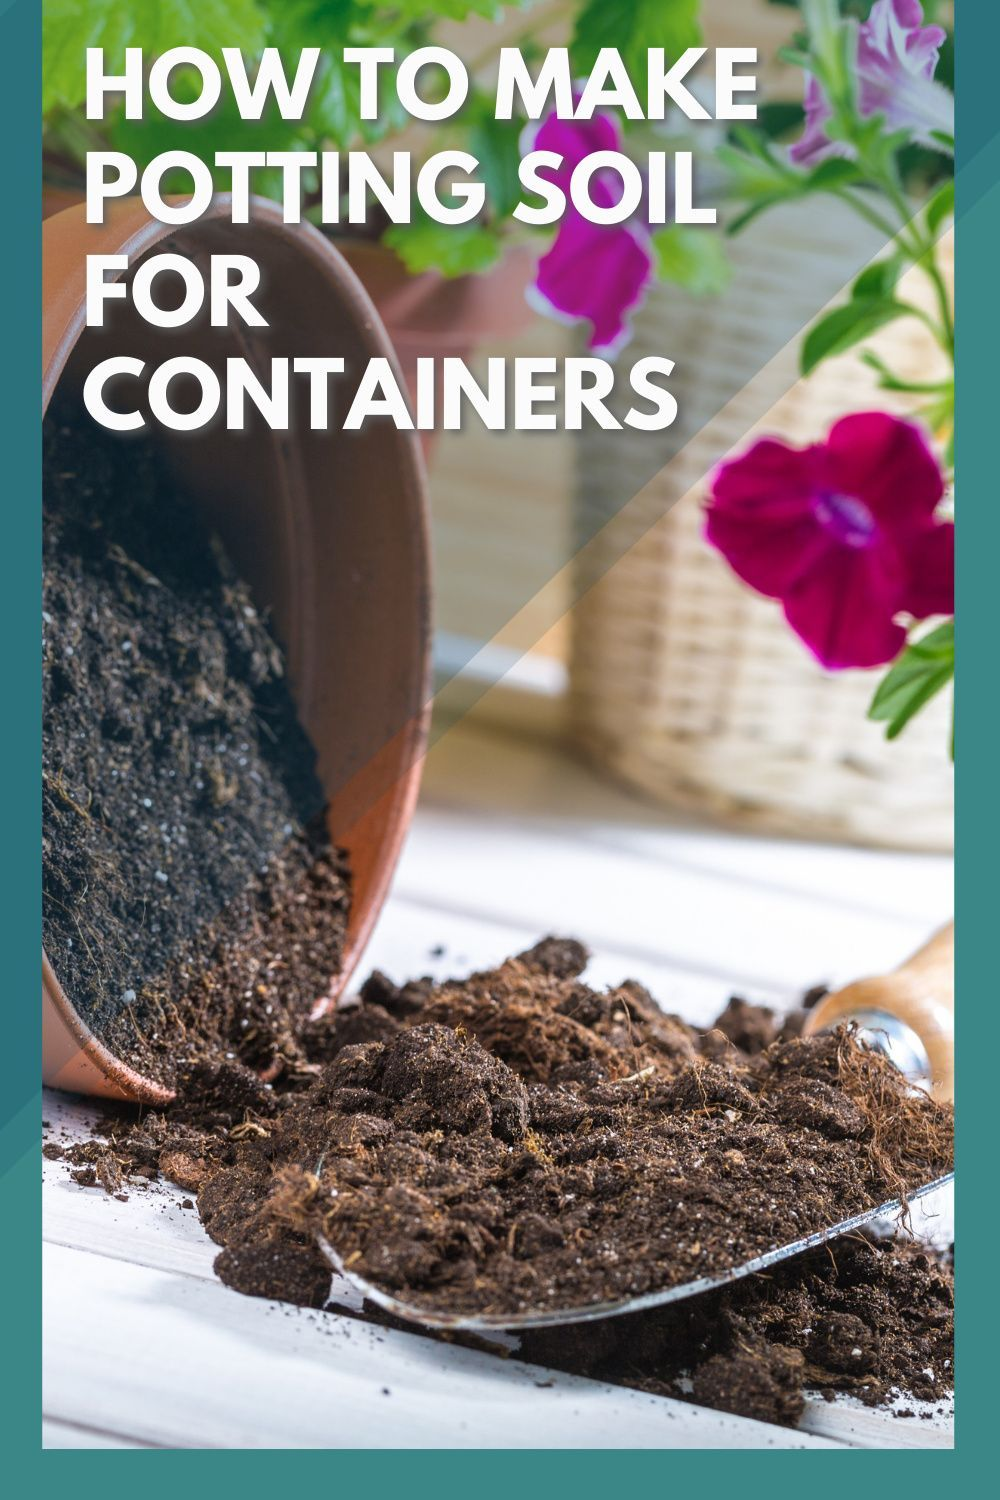 How to make potting soil for containers eco peanut in